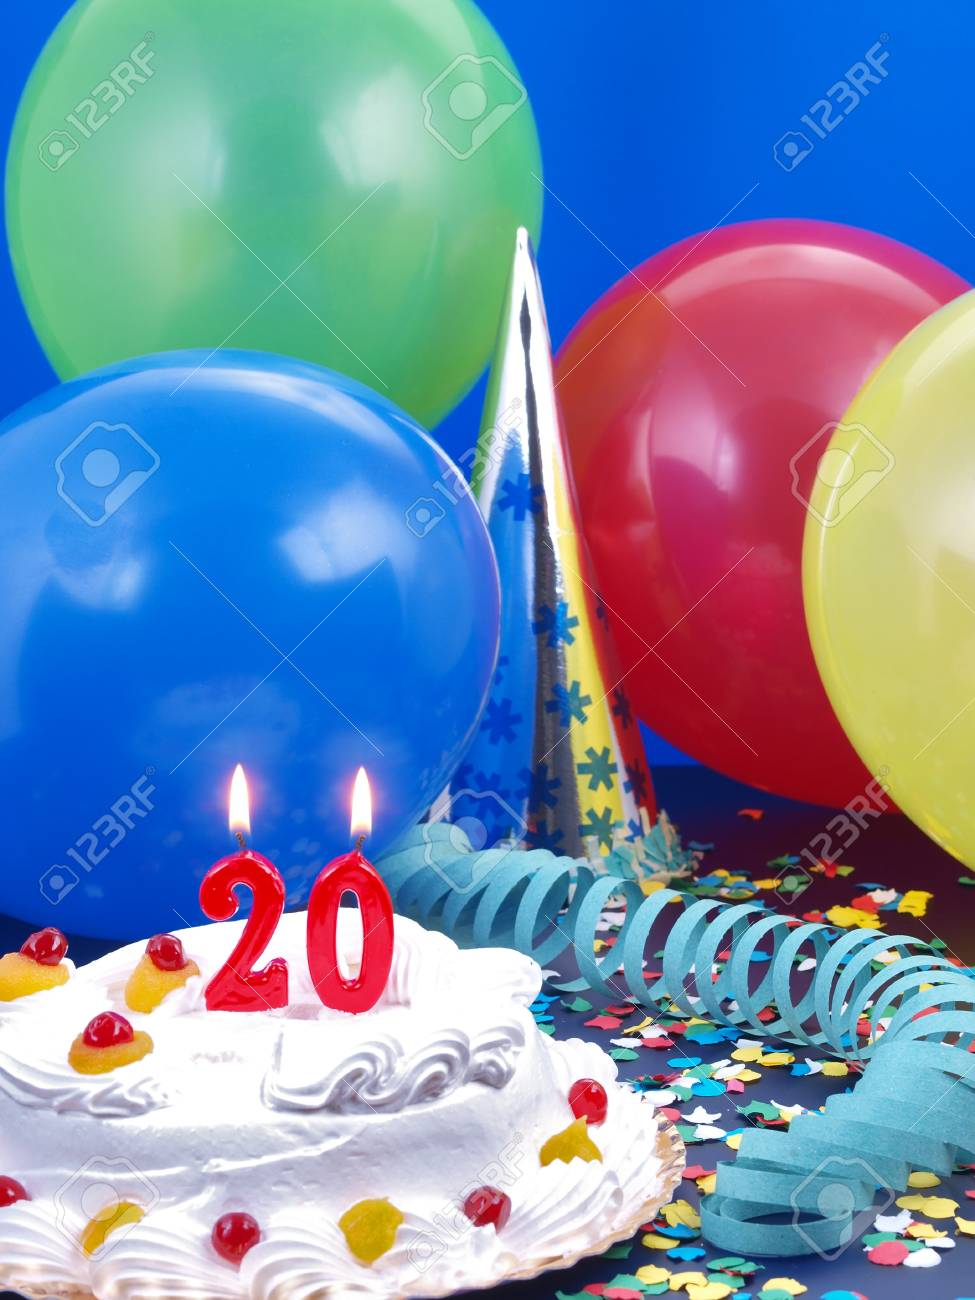 Birthday Cake With Red Candles Showing No 20 Stock Photo Picture